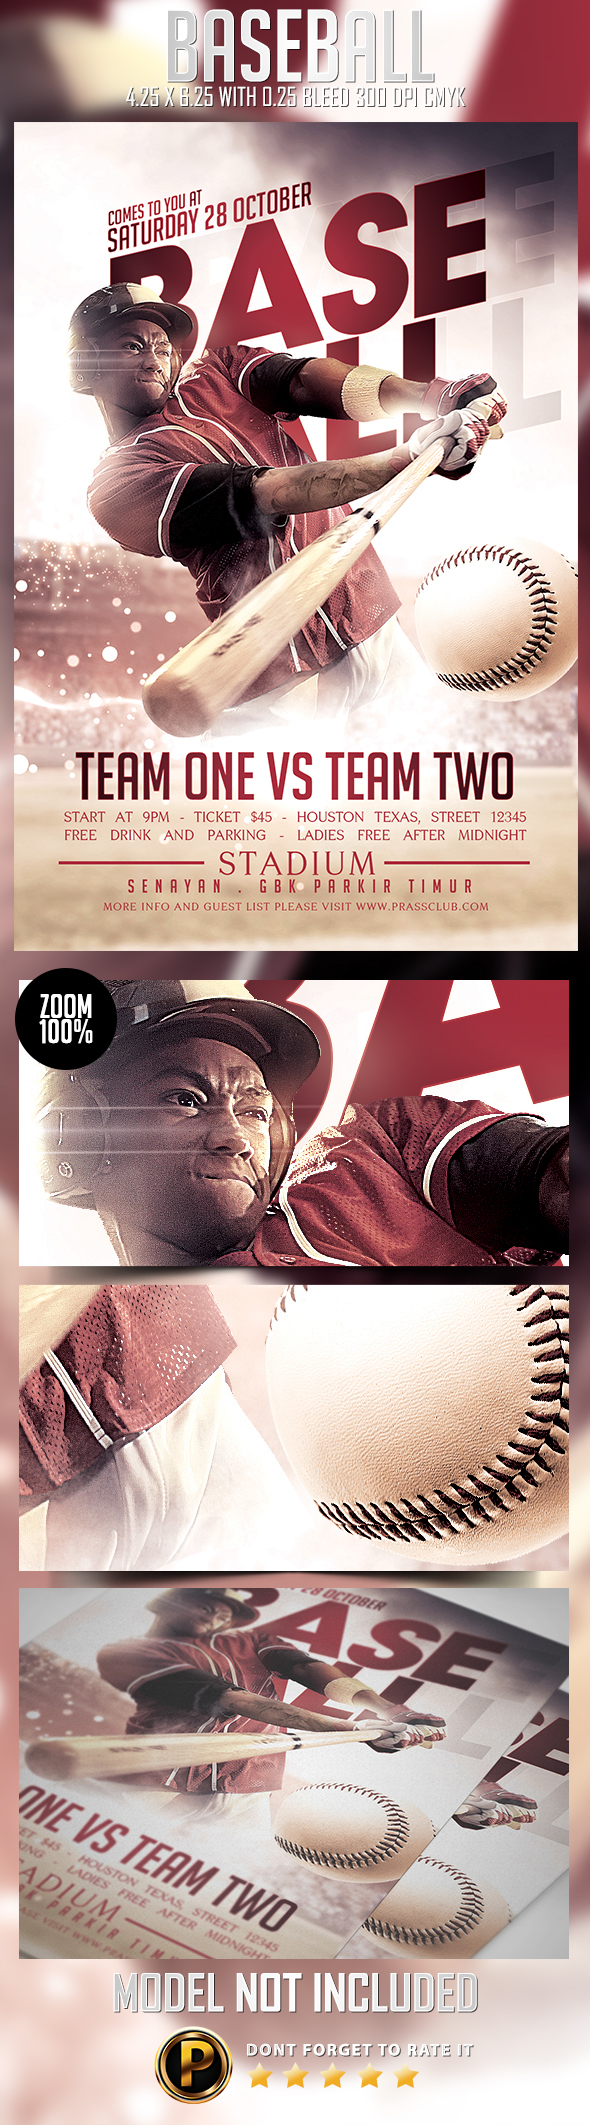 Baseball Flyer Template On Behance